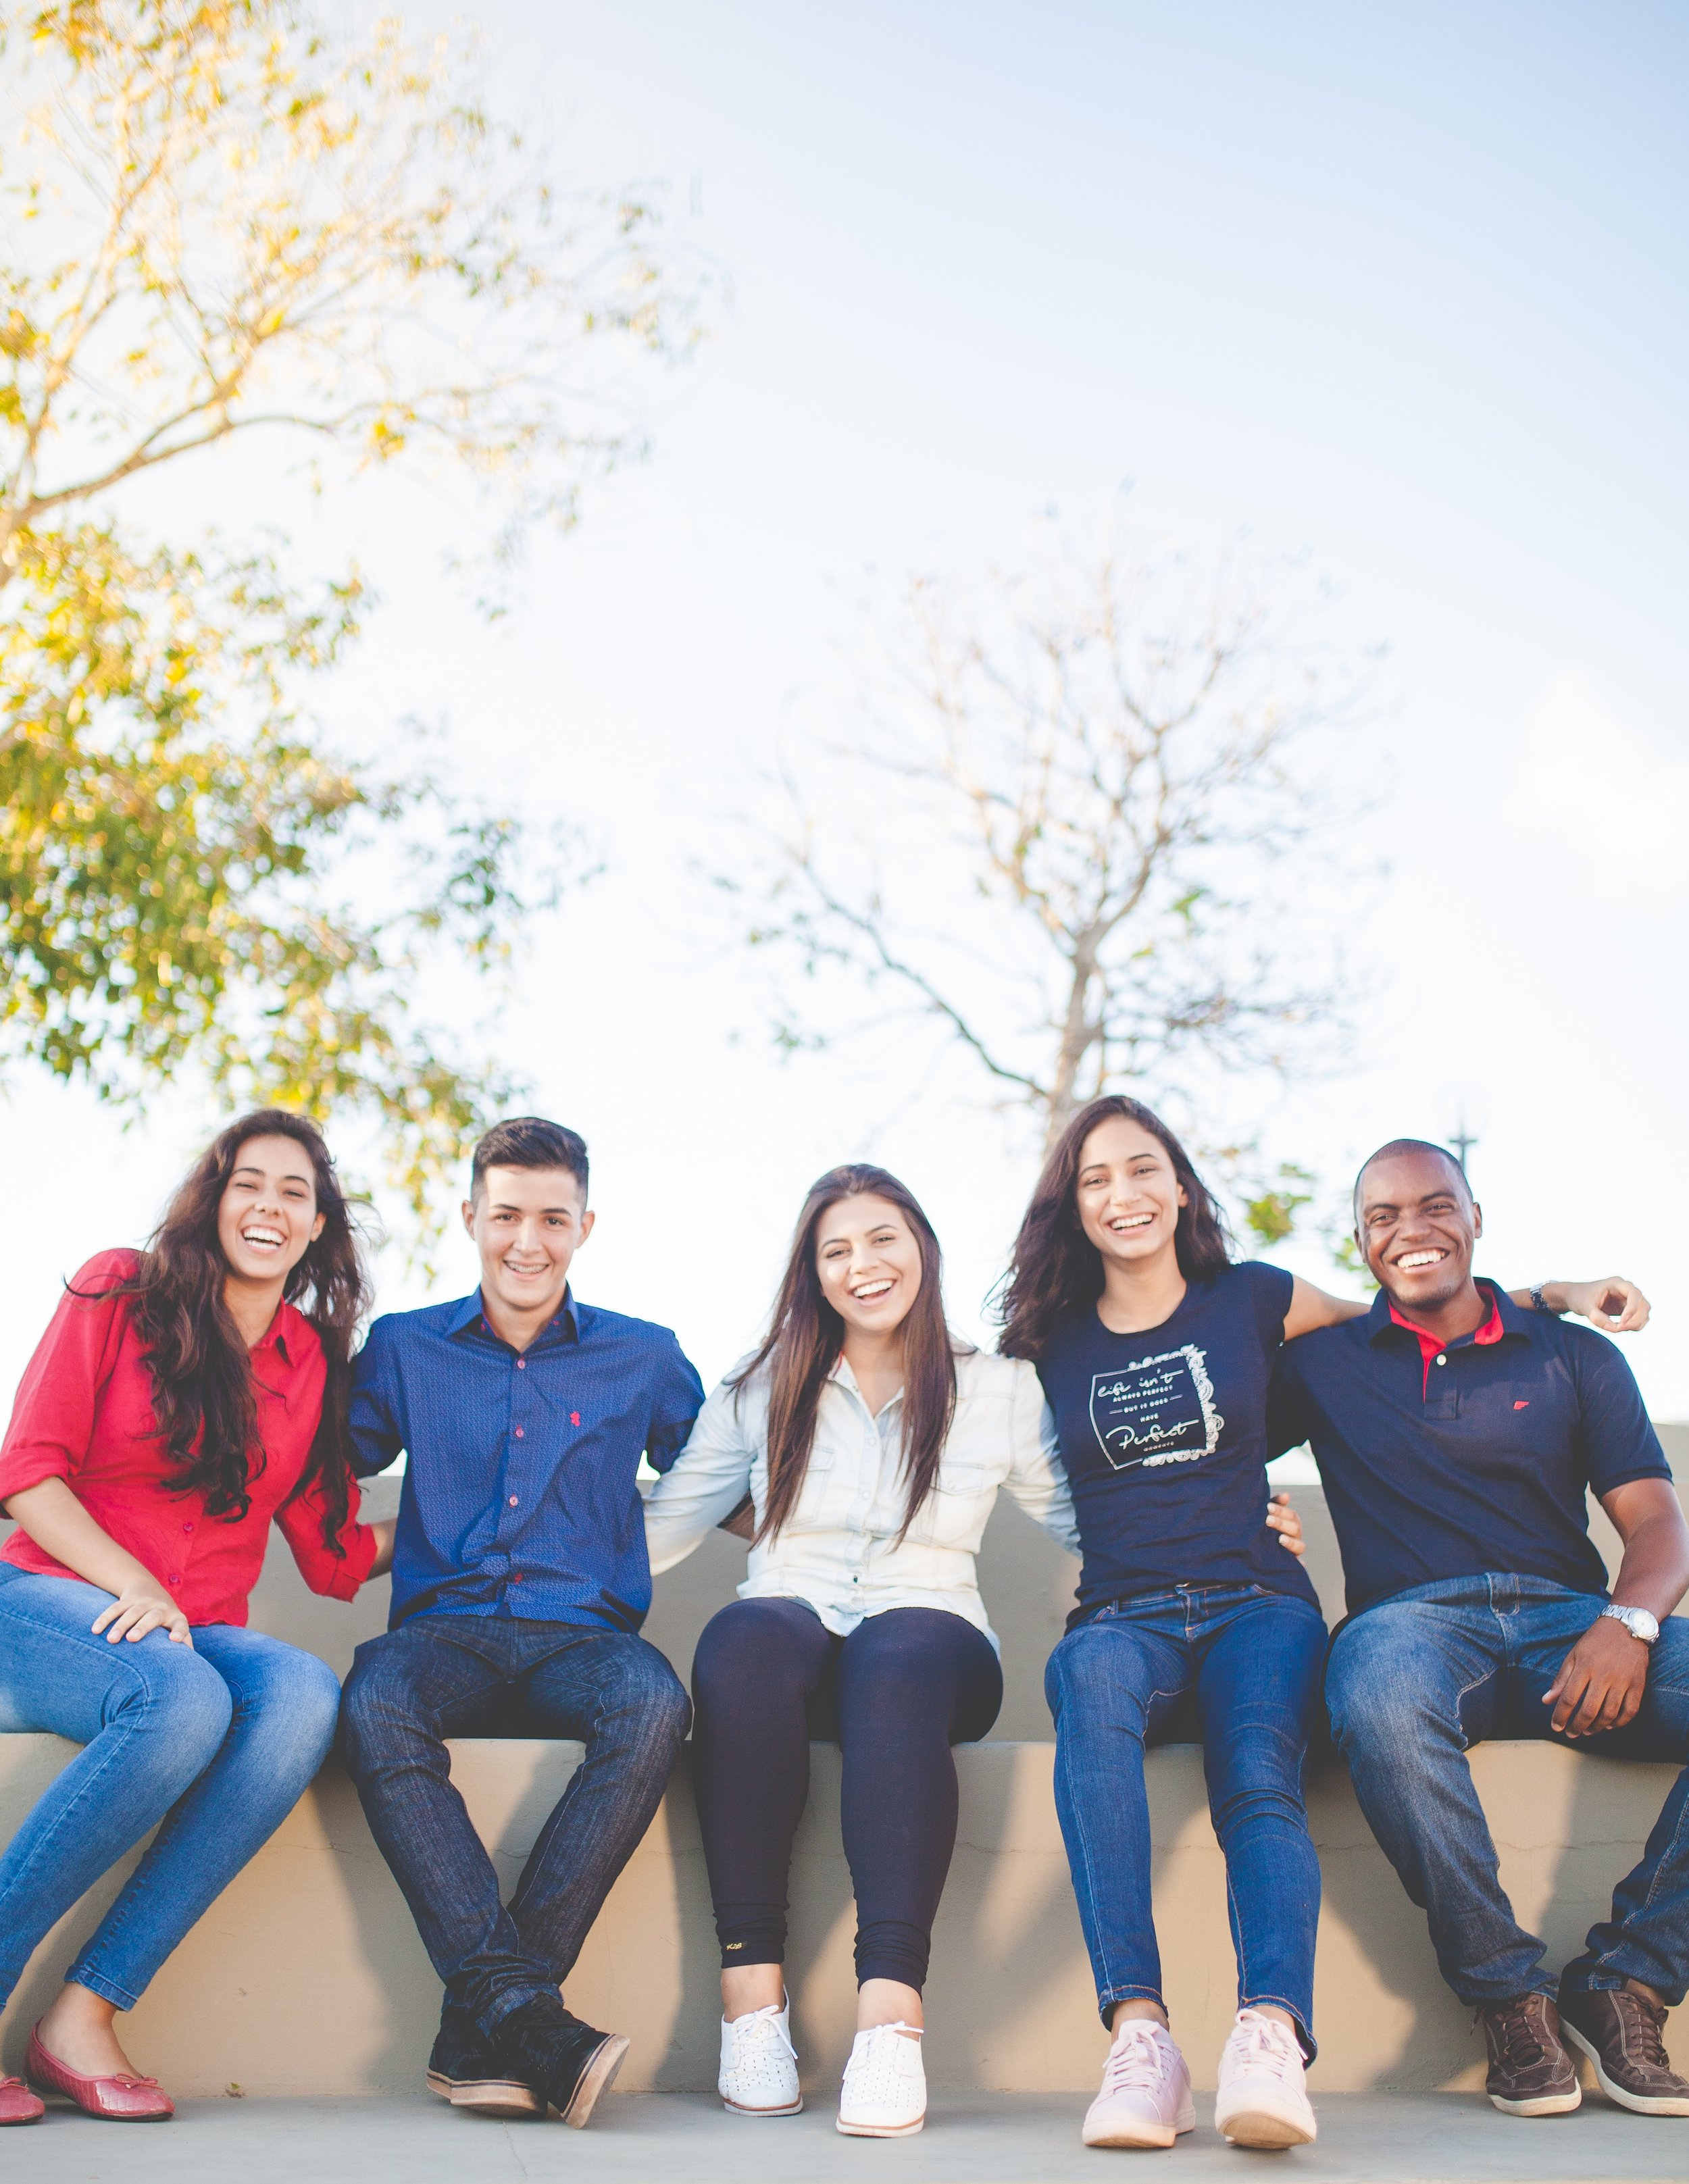 Five students sitting, smiling and posing for photo